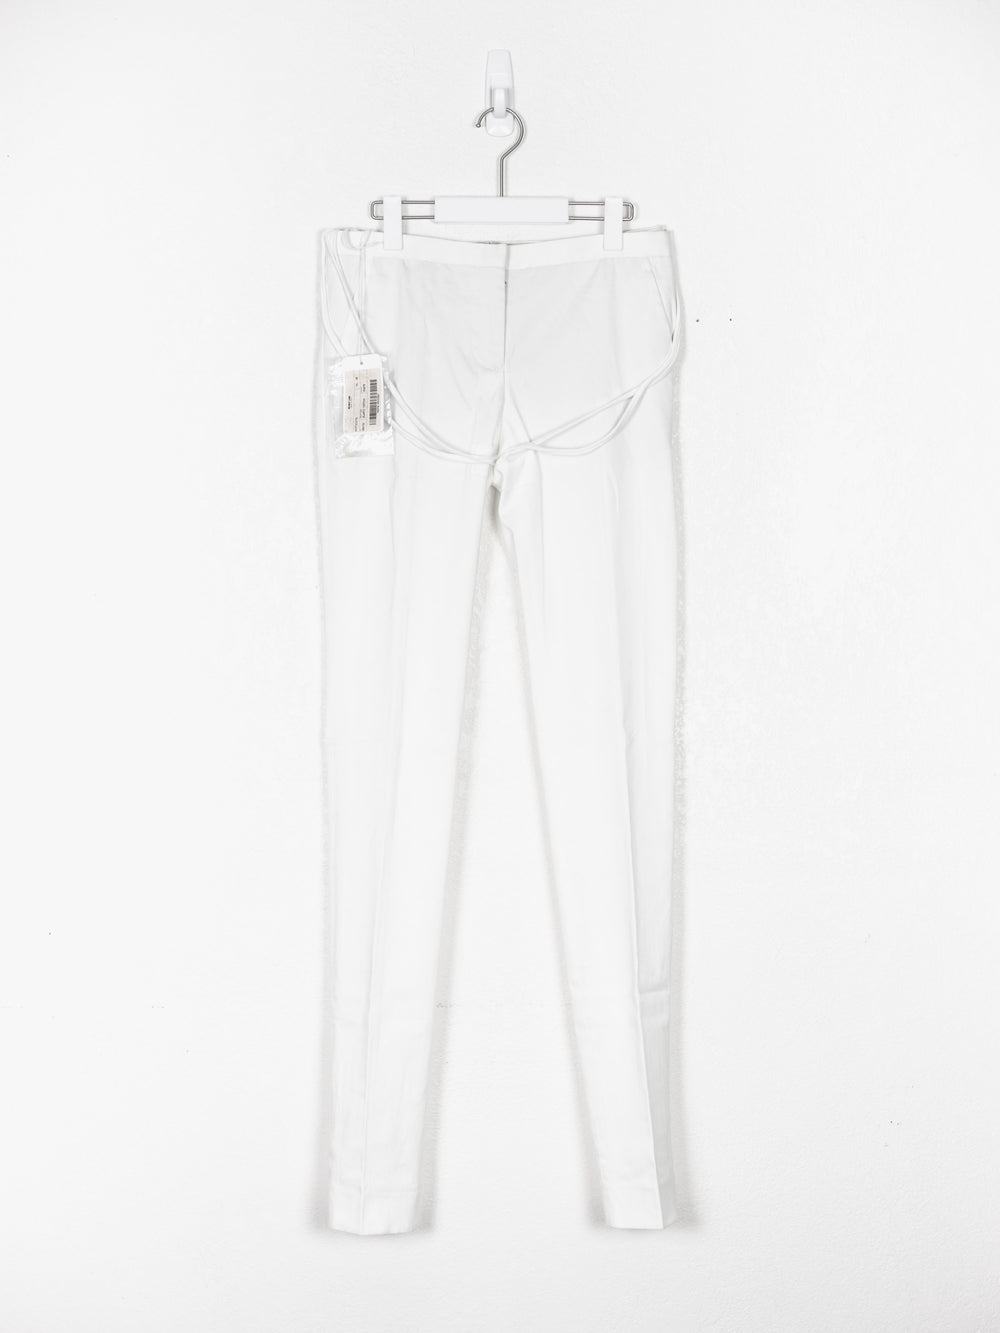 Helmut Lang SS04 Raw Strap Trousers